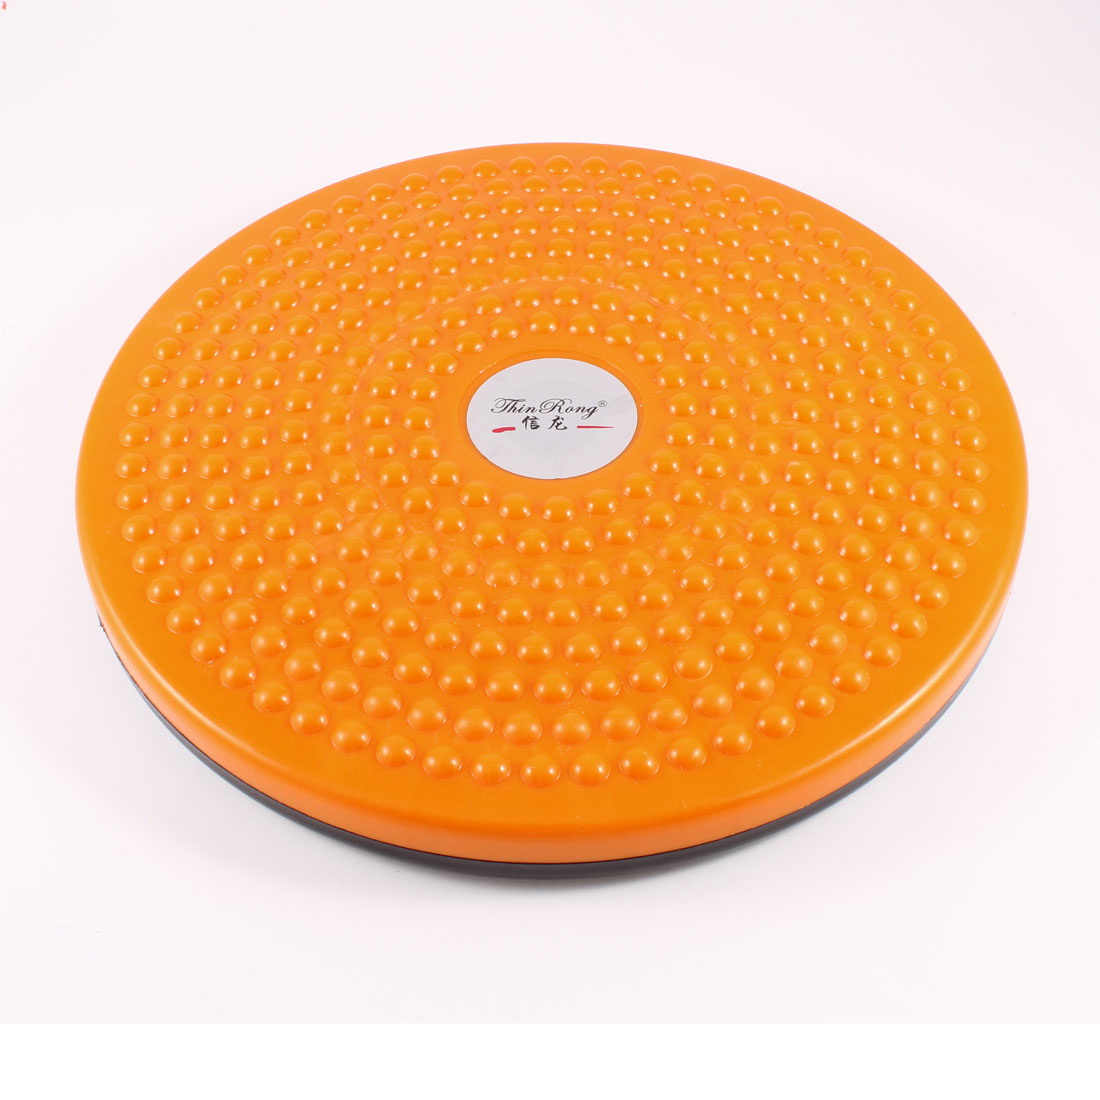 "11"" Round Plastic Foot Massage Body Shaper Waist Twist Board Orange Black"